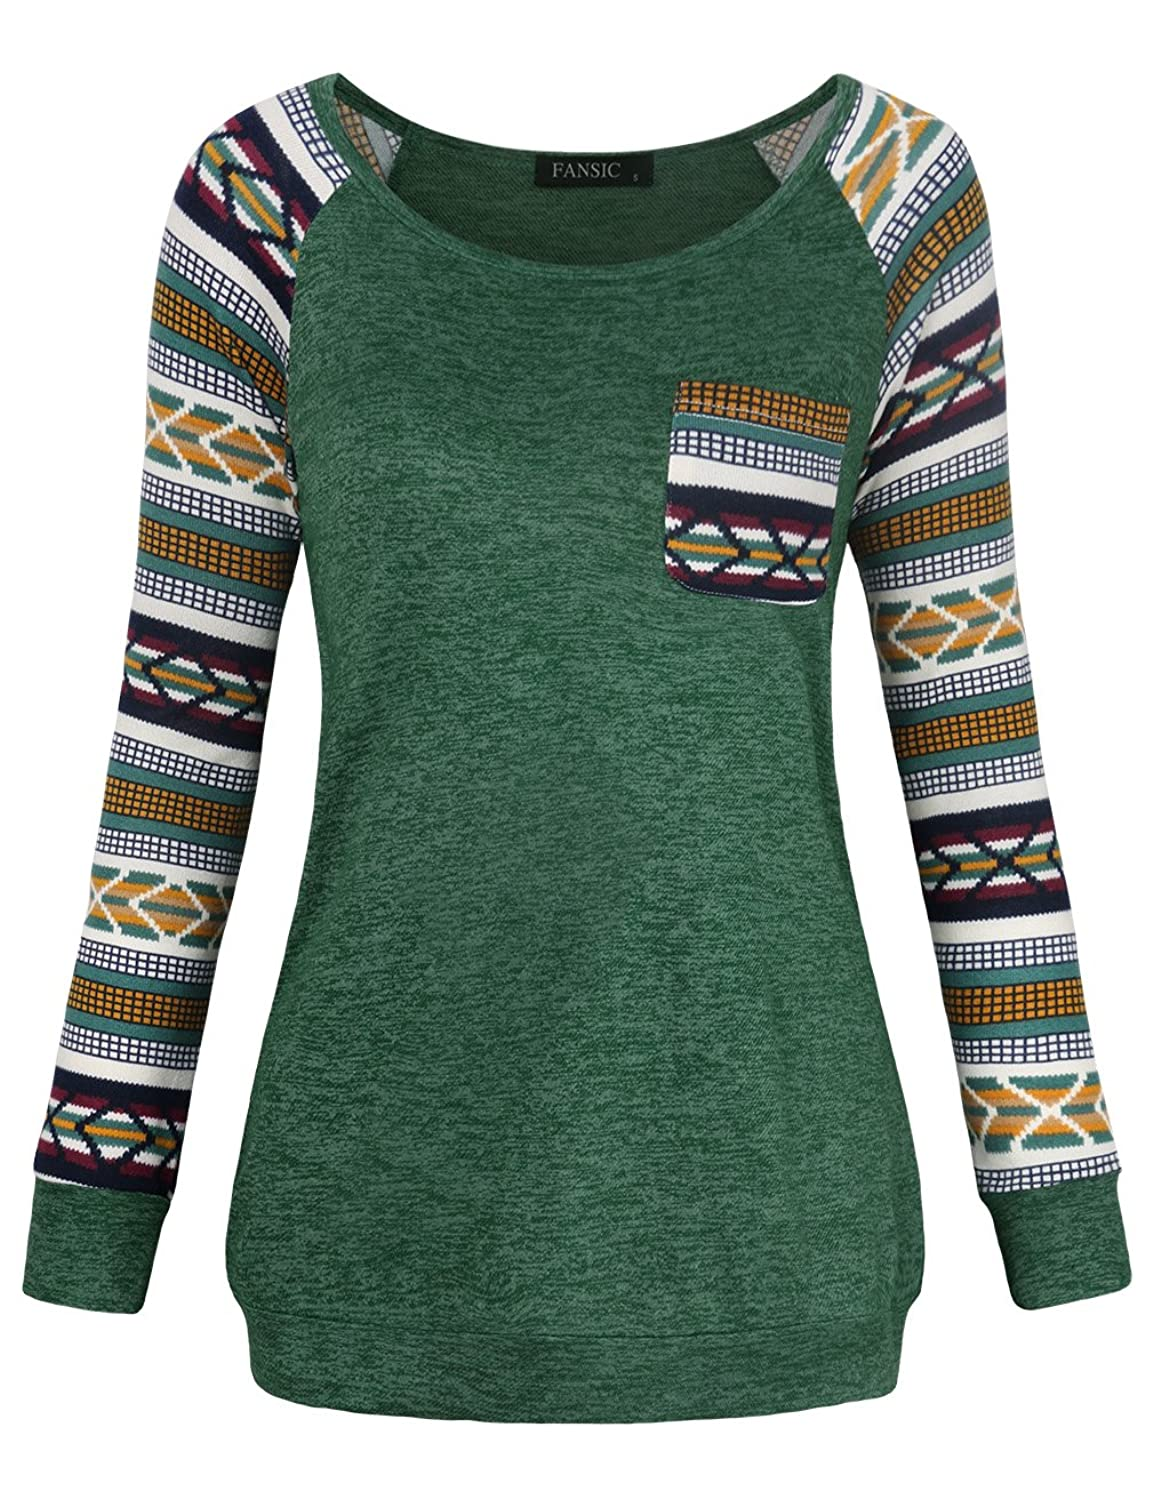 FANSIC Women Casual Long Sleeve Knitted Raglan Shirts Pullover Sweater Tops With Pocket